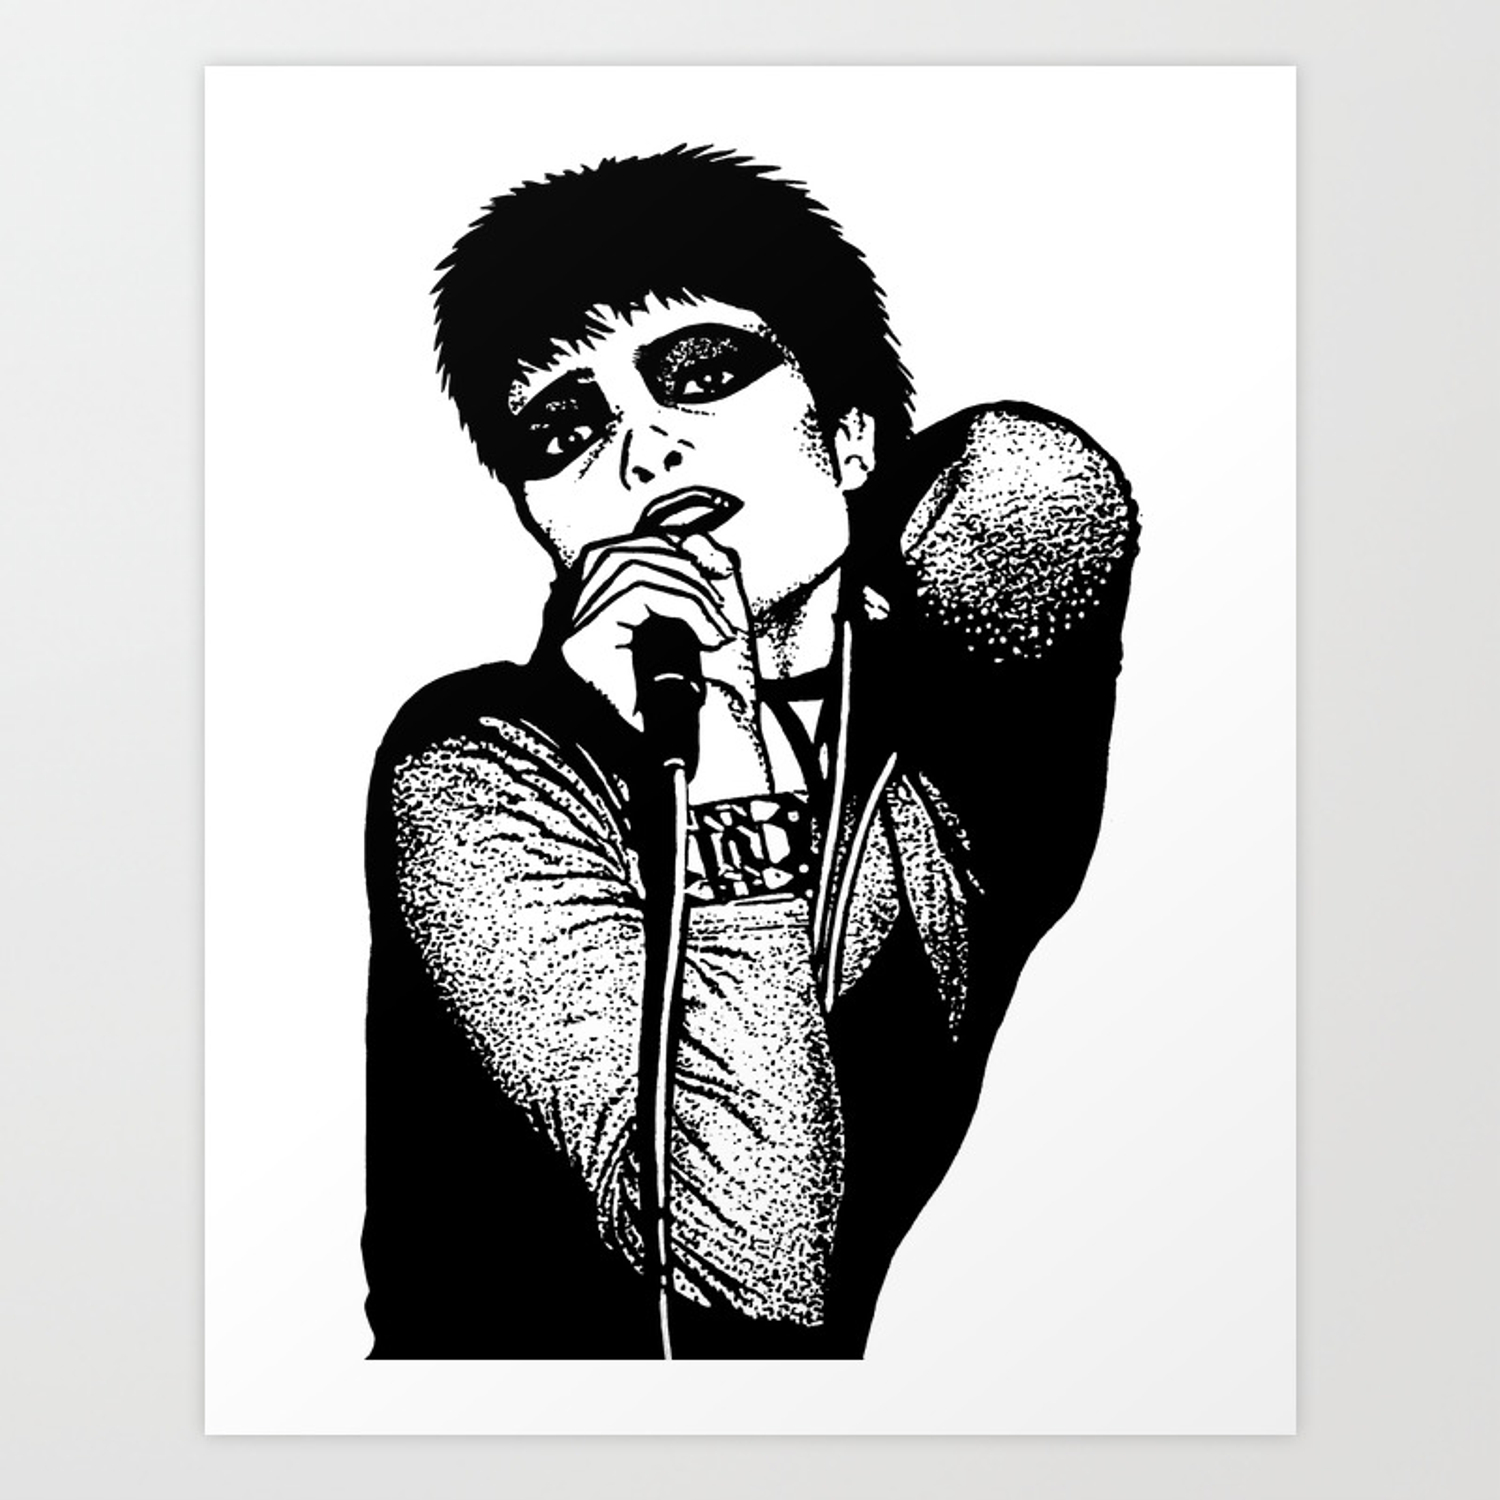 Siouxsie Sioux Of Siouxsie And The Banshees Art Print By